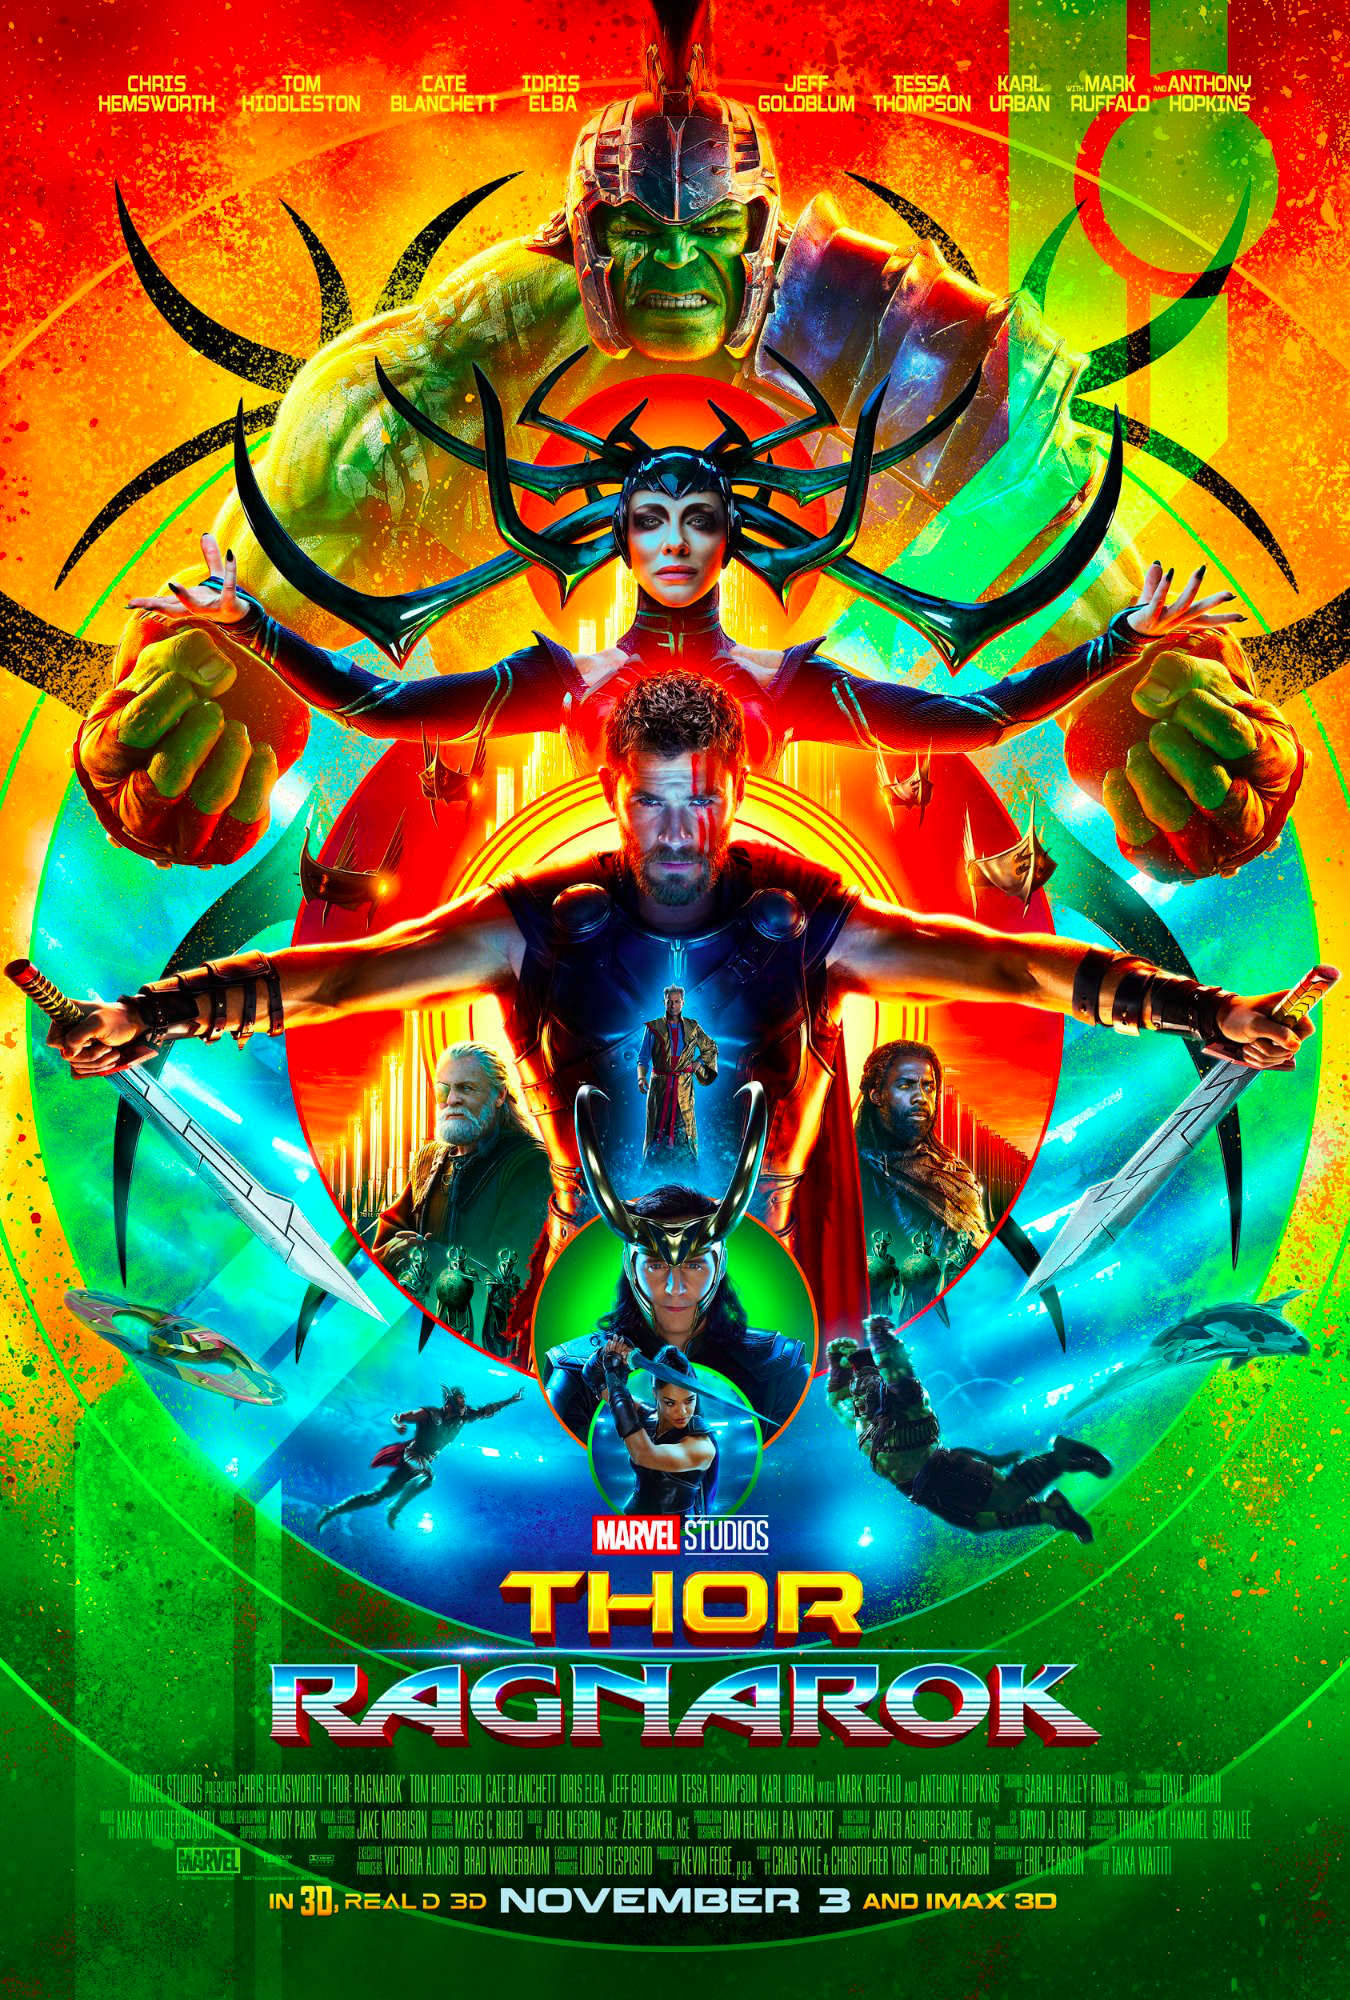 Here Are the Theatrical Posters for Every Marvel Cinematic